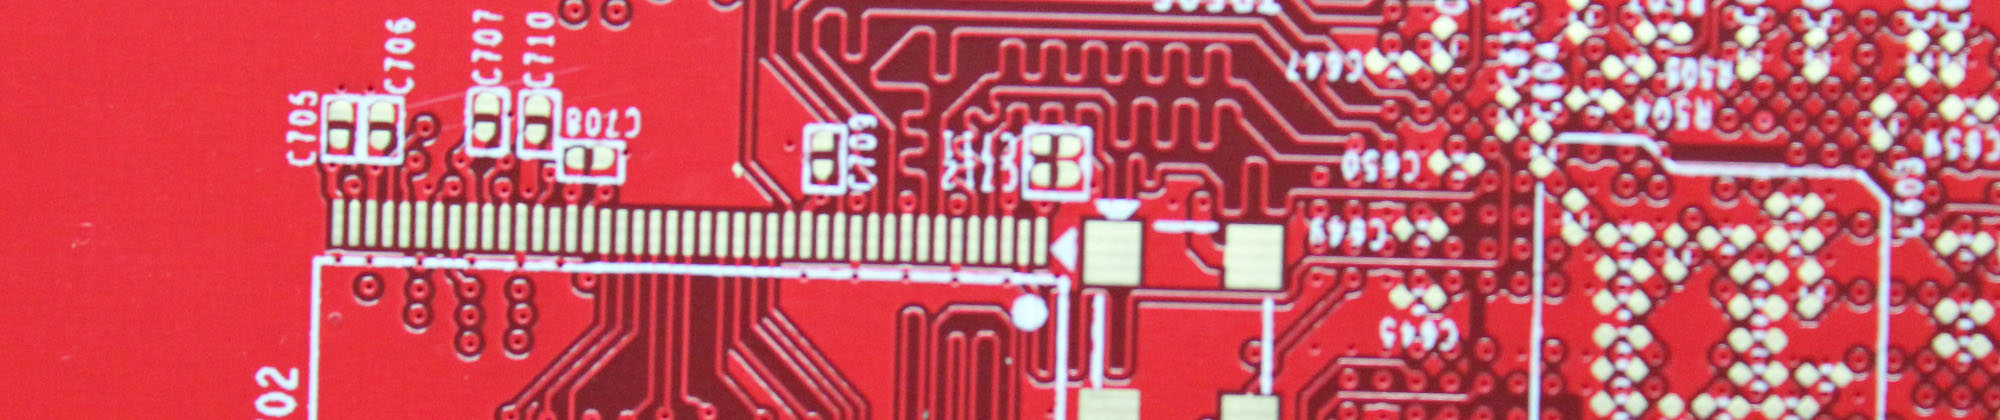 HDI circuit board with red solder mask